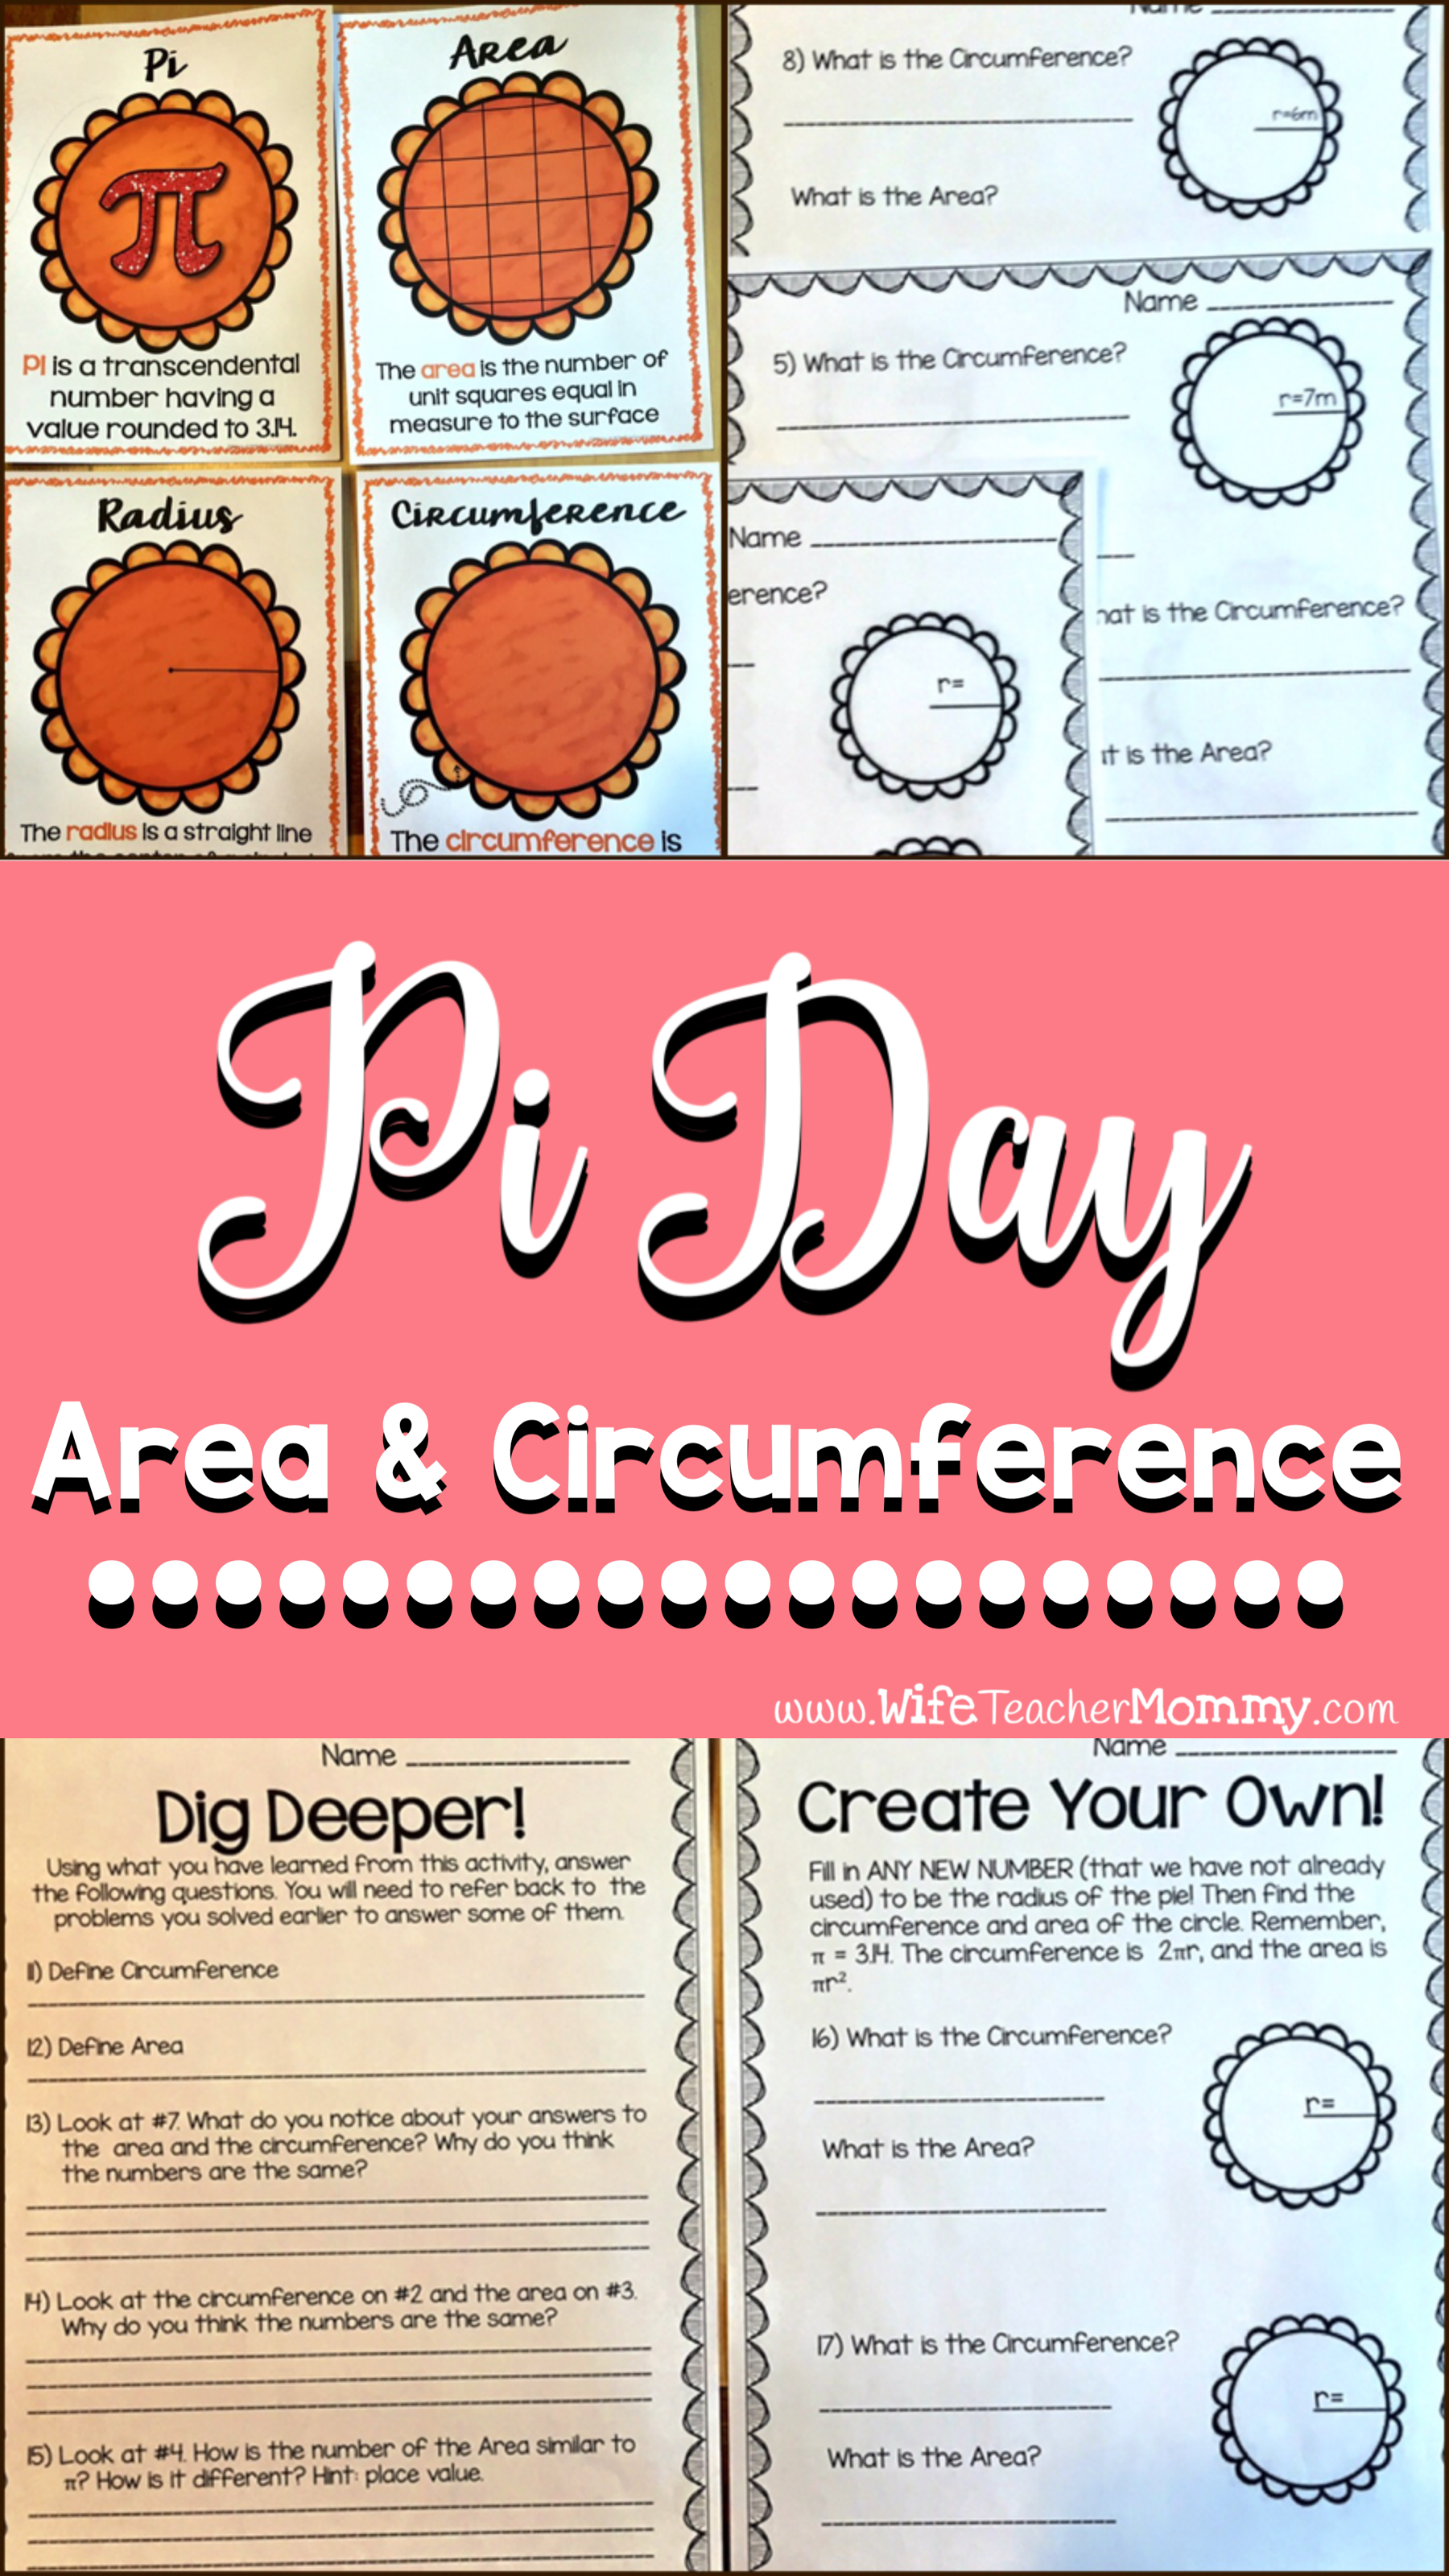 worksheet Pi Worksheets pi day area and circumference critical thinking worksheets for pie in these engaging pie